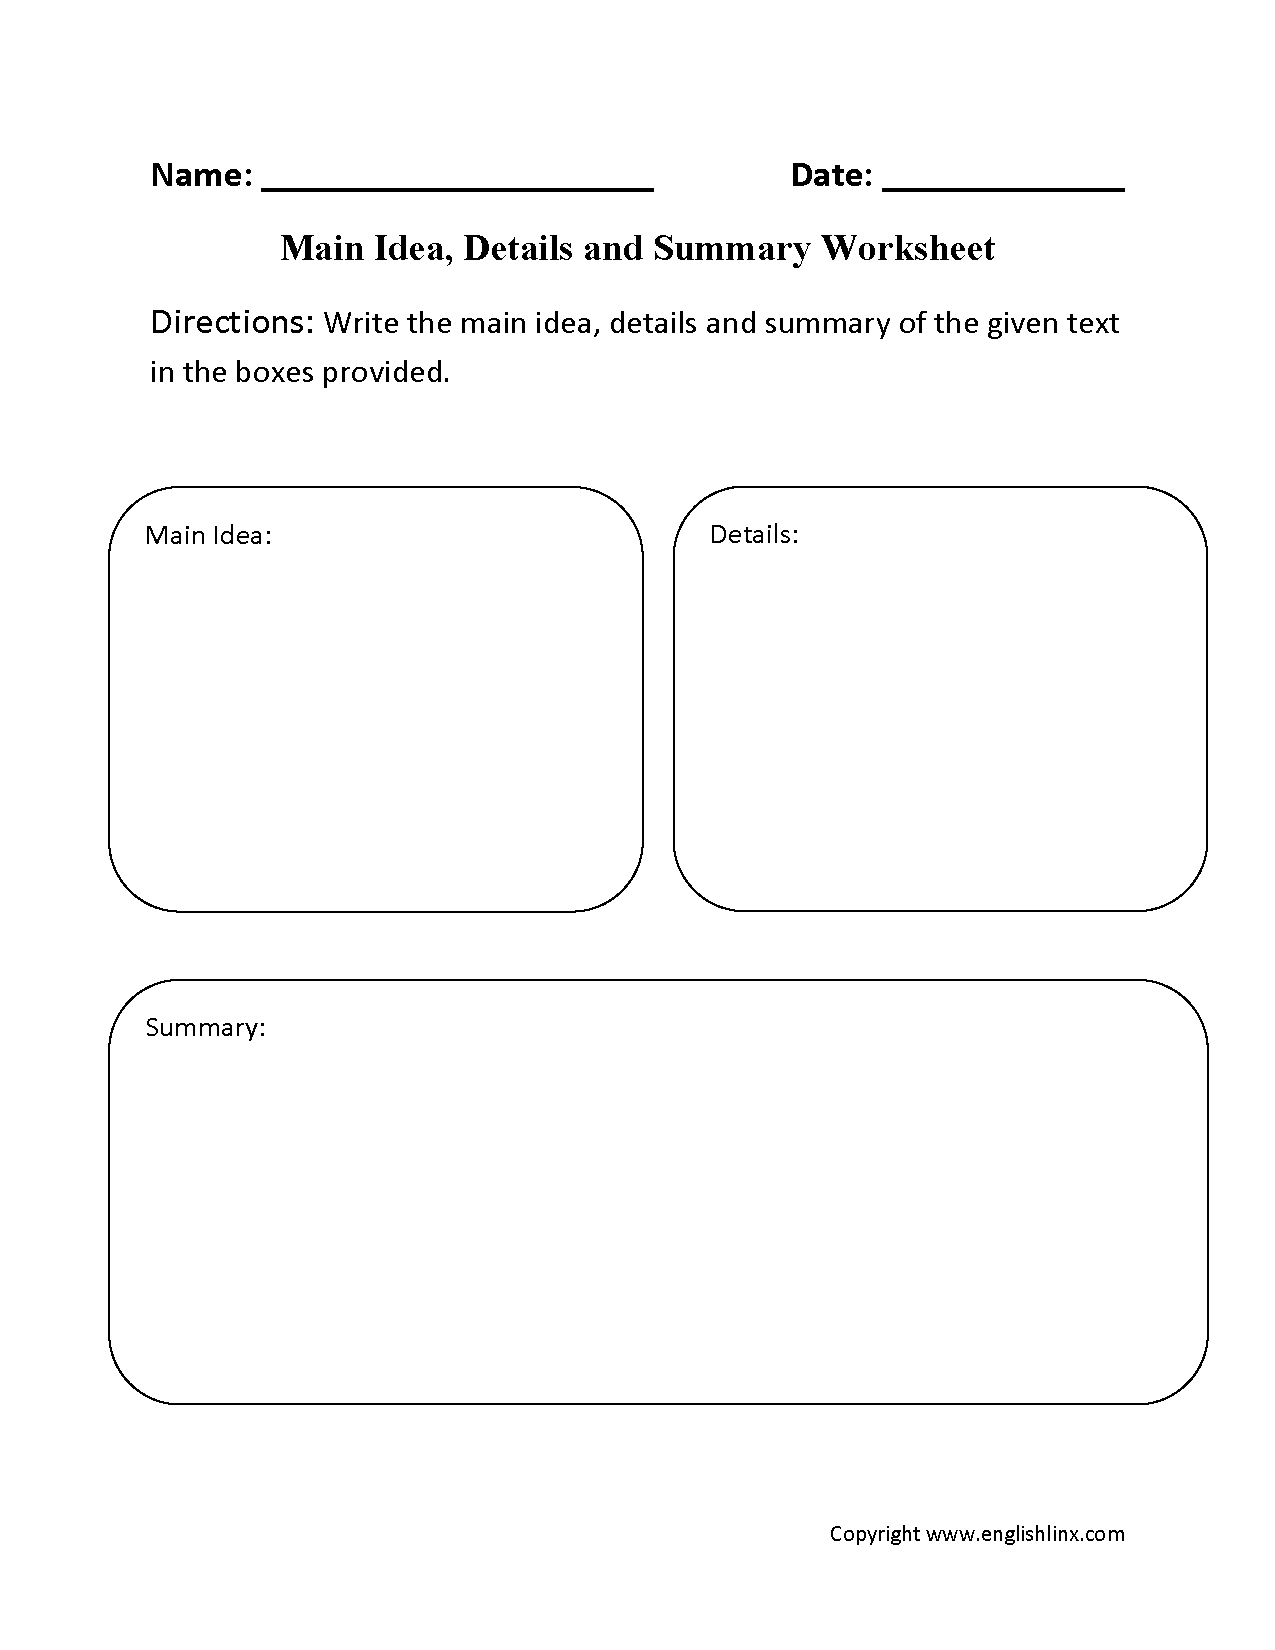 29 Comprehensive Main Idea Worksheets   KittyBabyLove.com